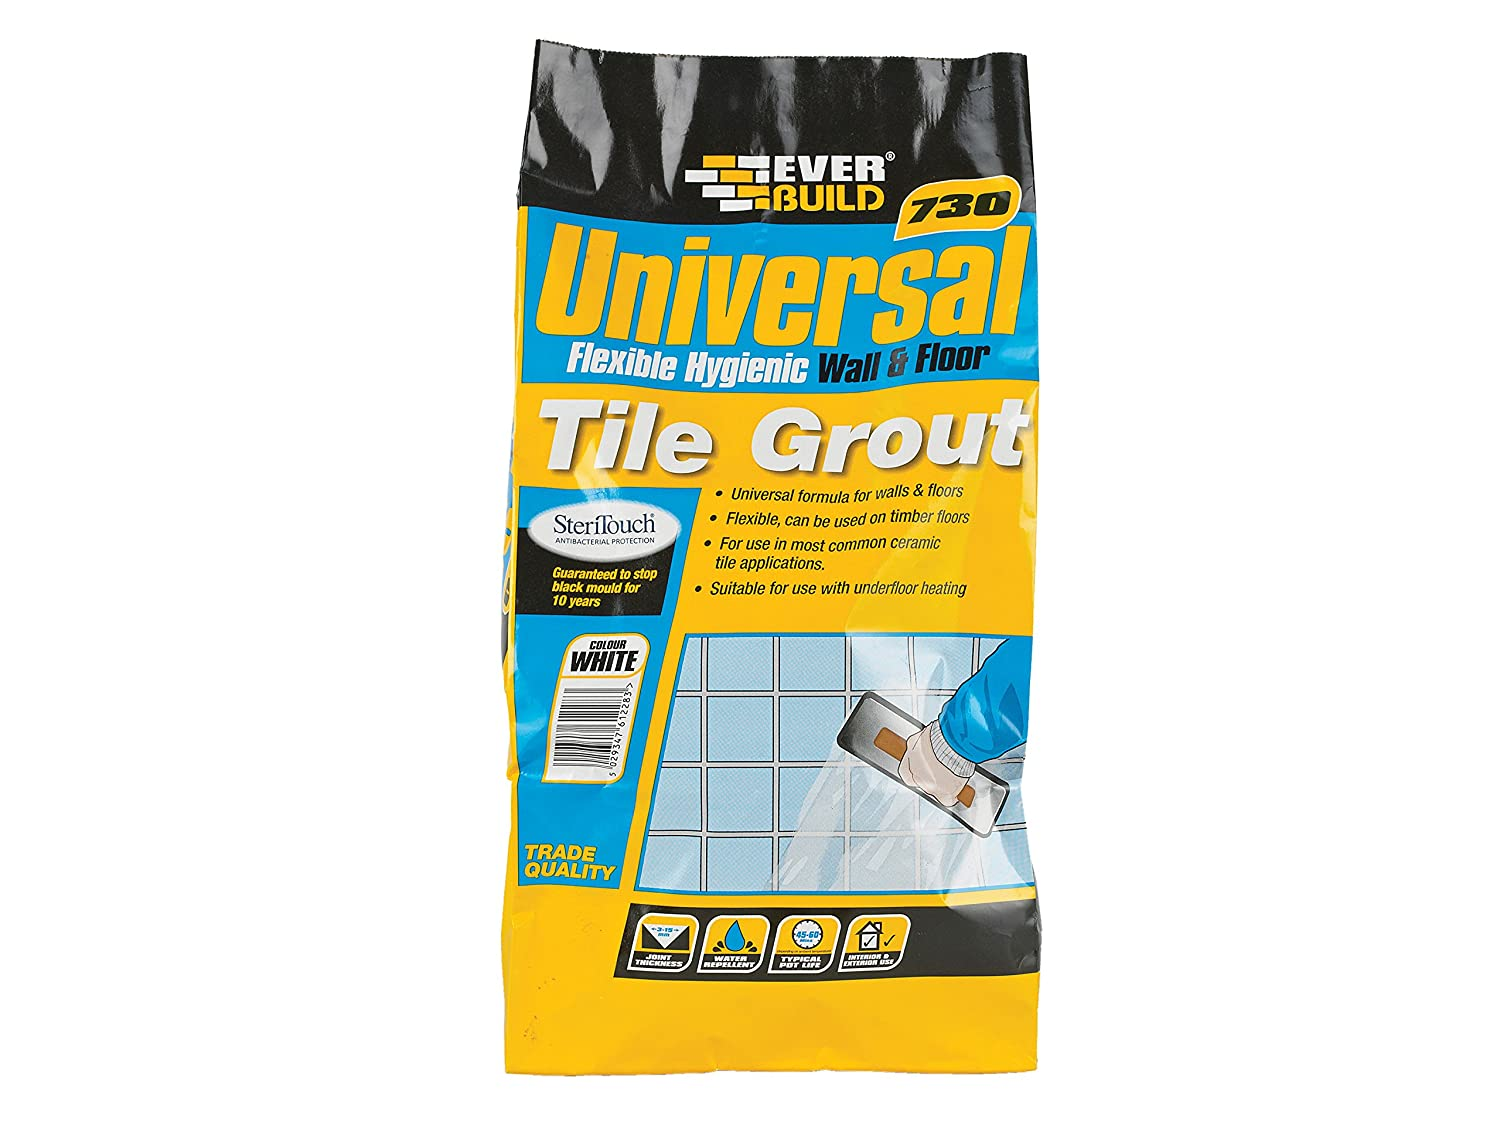 Everbuild UNIFLEX5IV 730 Universal Flexible Hygienic Wall and Floor Tile Grout, Ivory, 5 kg